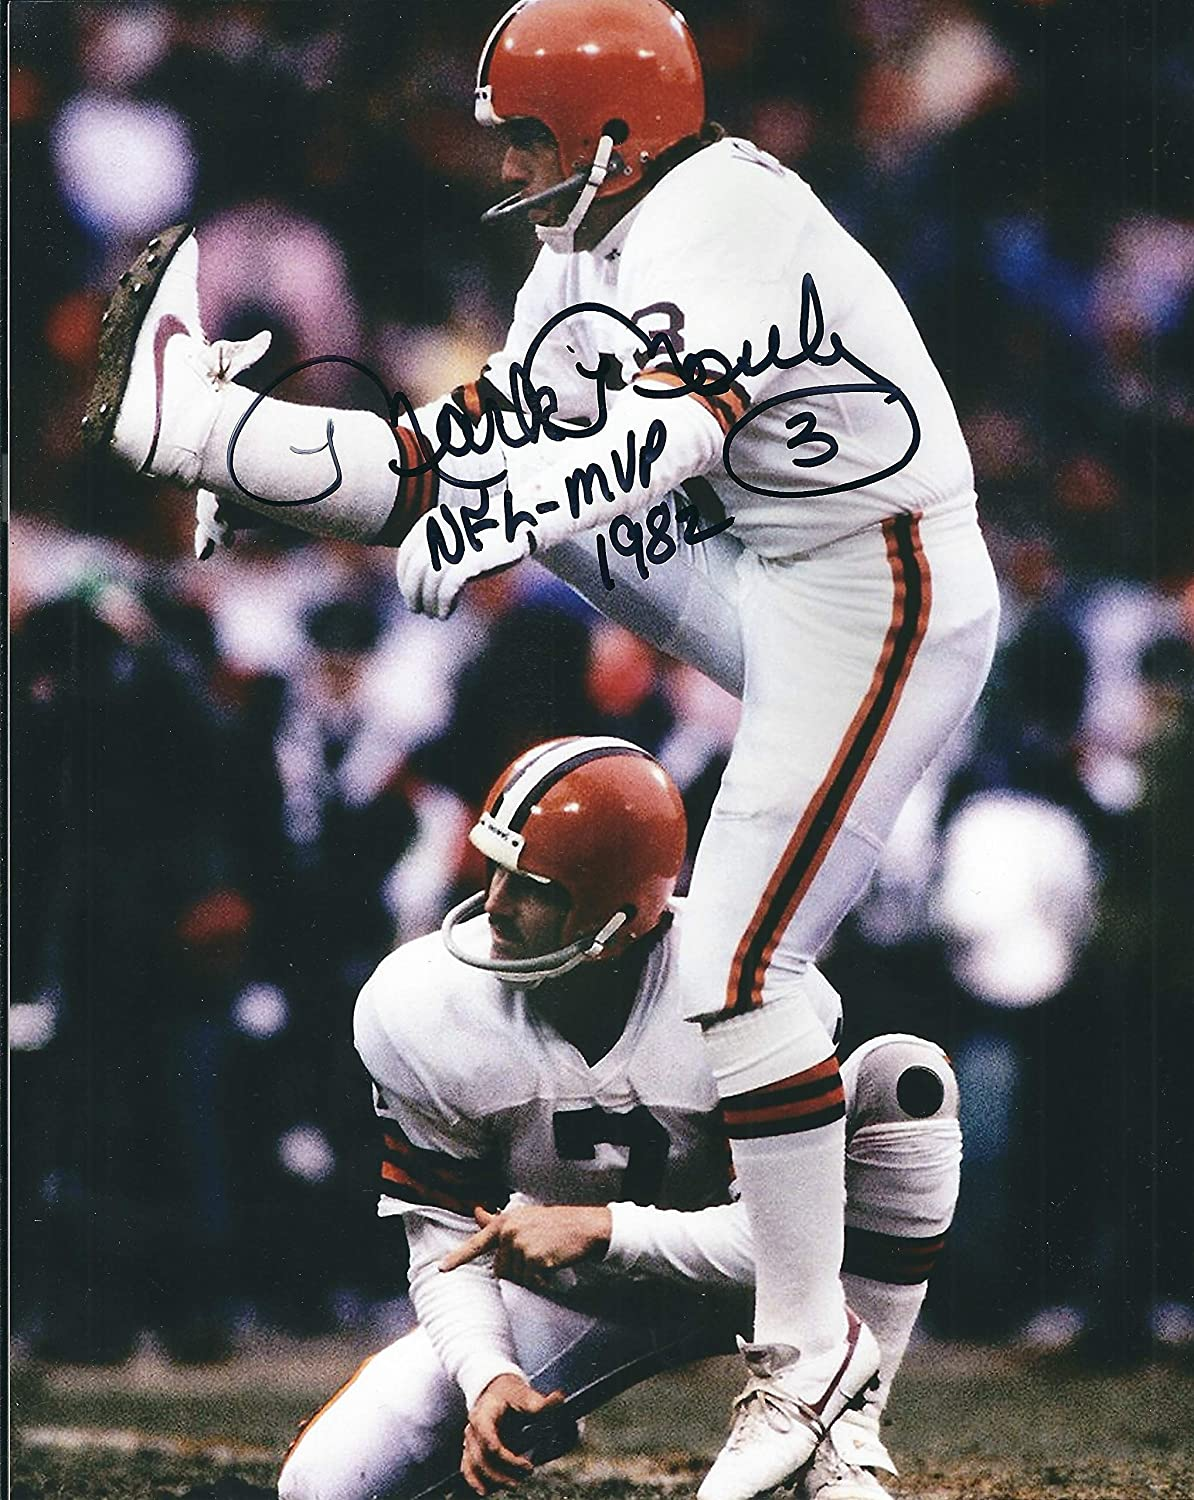 Autographed Mark Moseley 8x10 Cleveland Browns Photo